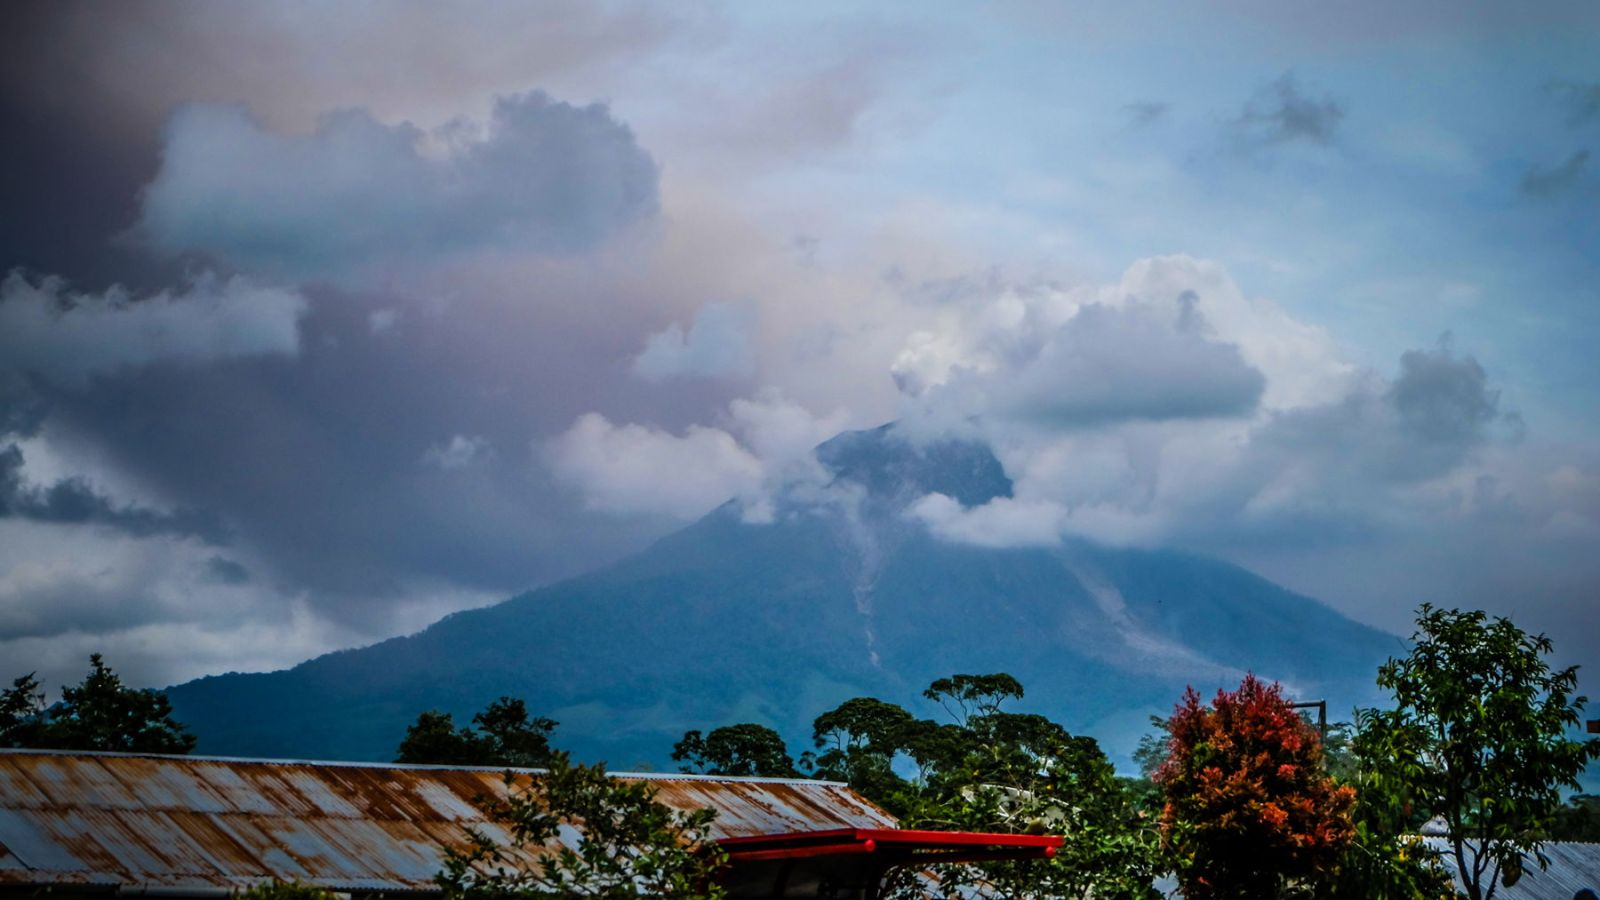 a photo of the erupting mount sinabung in sumatra, indonesia.